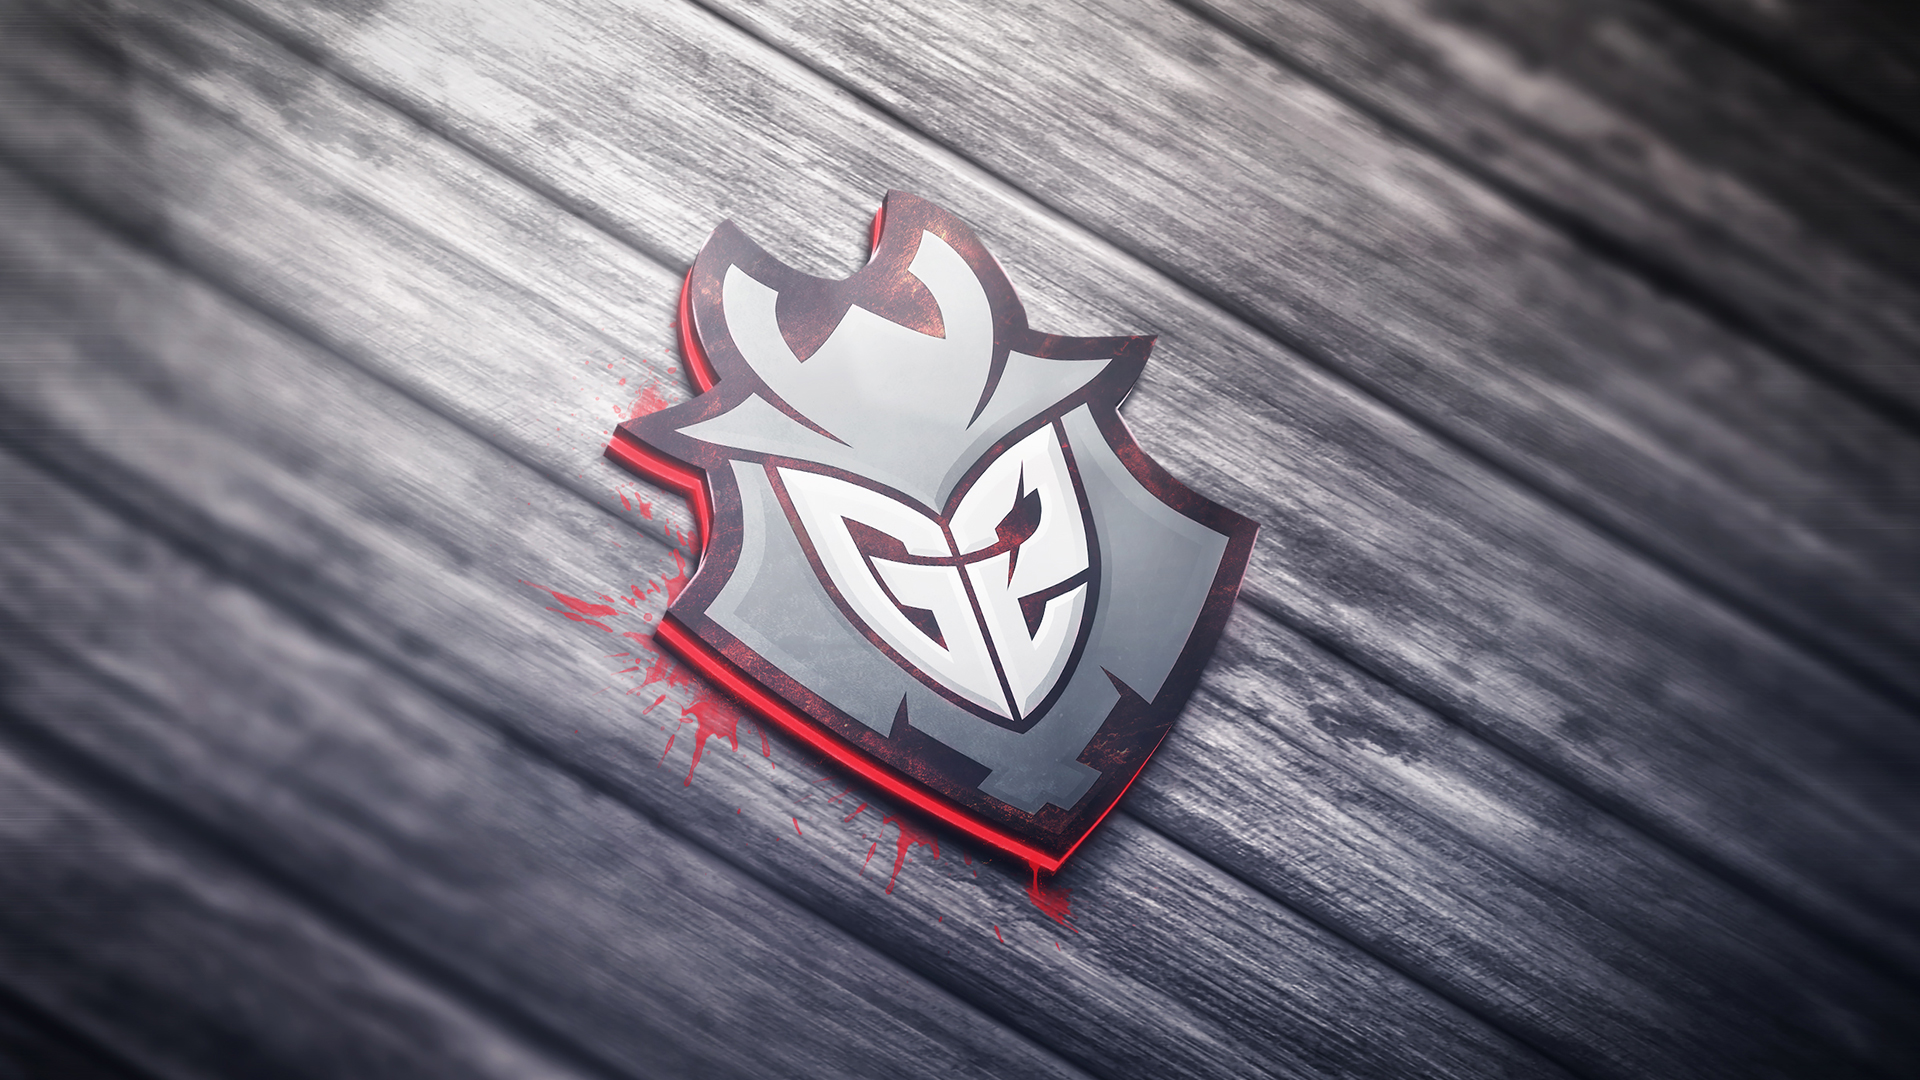 What caused G2's issues at Katowice?